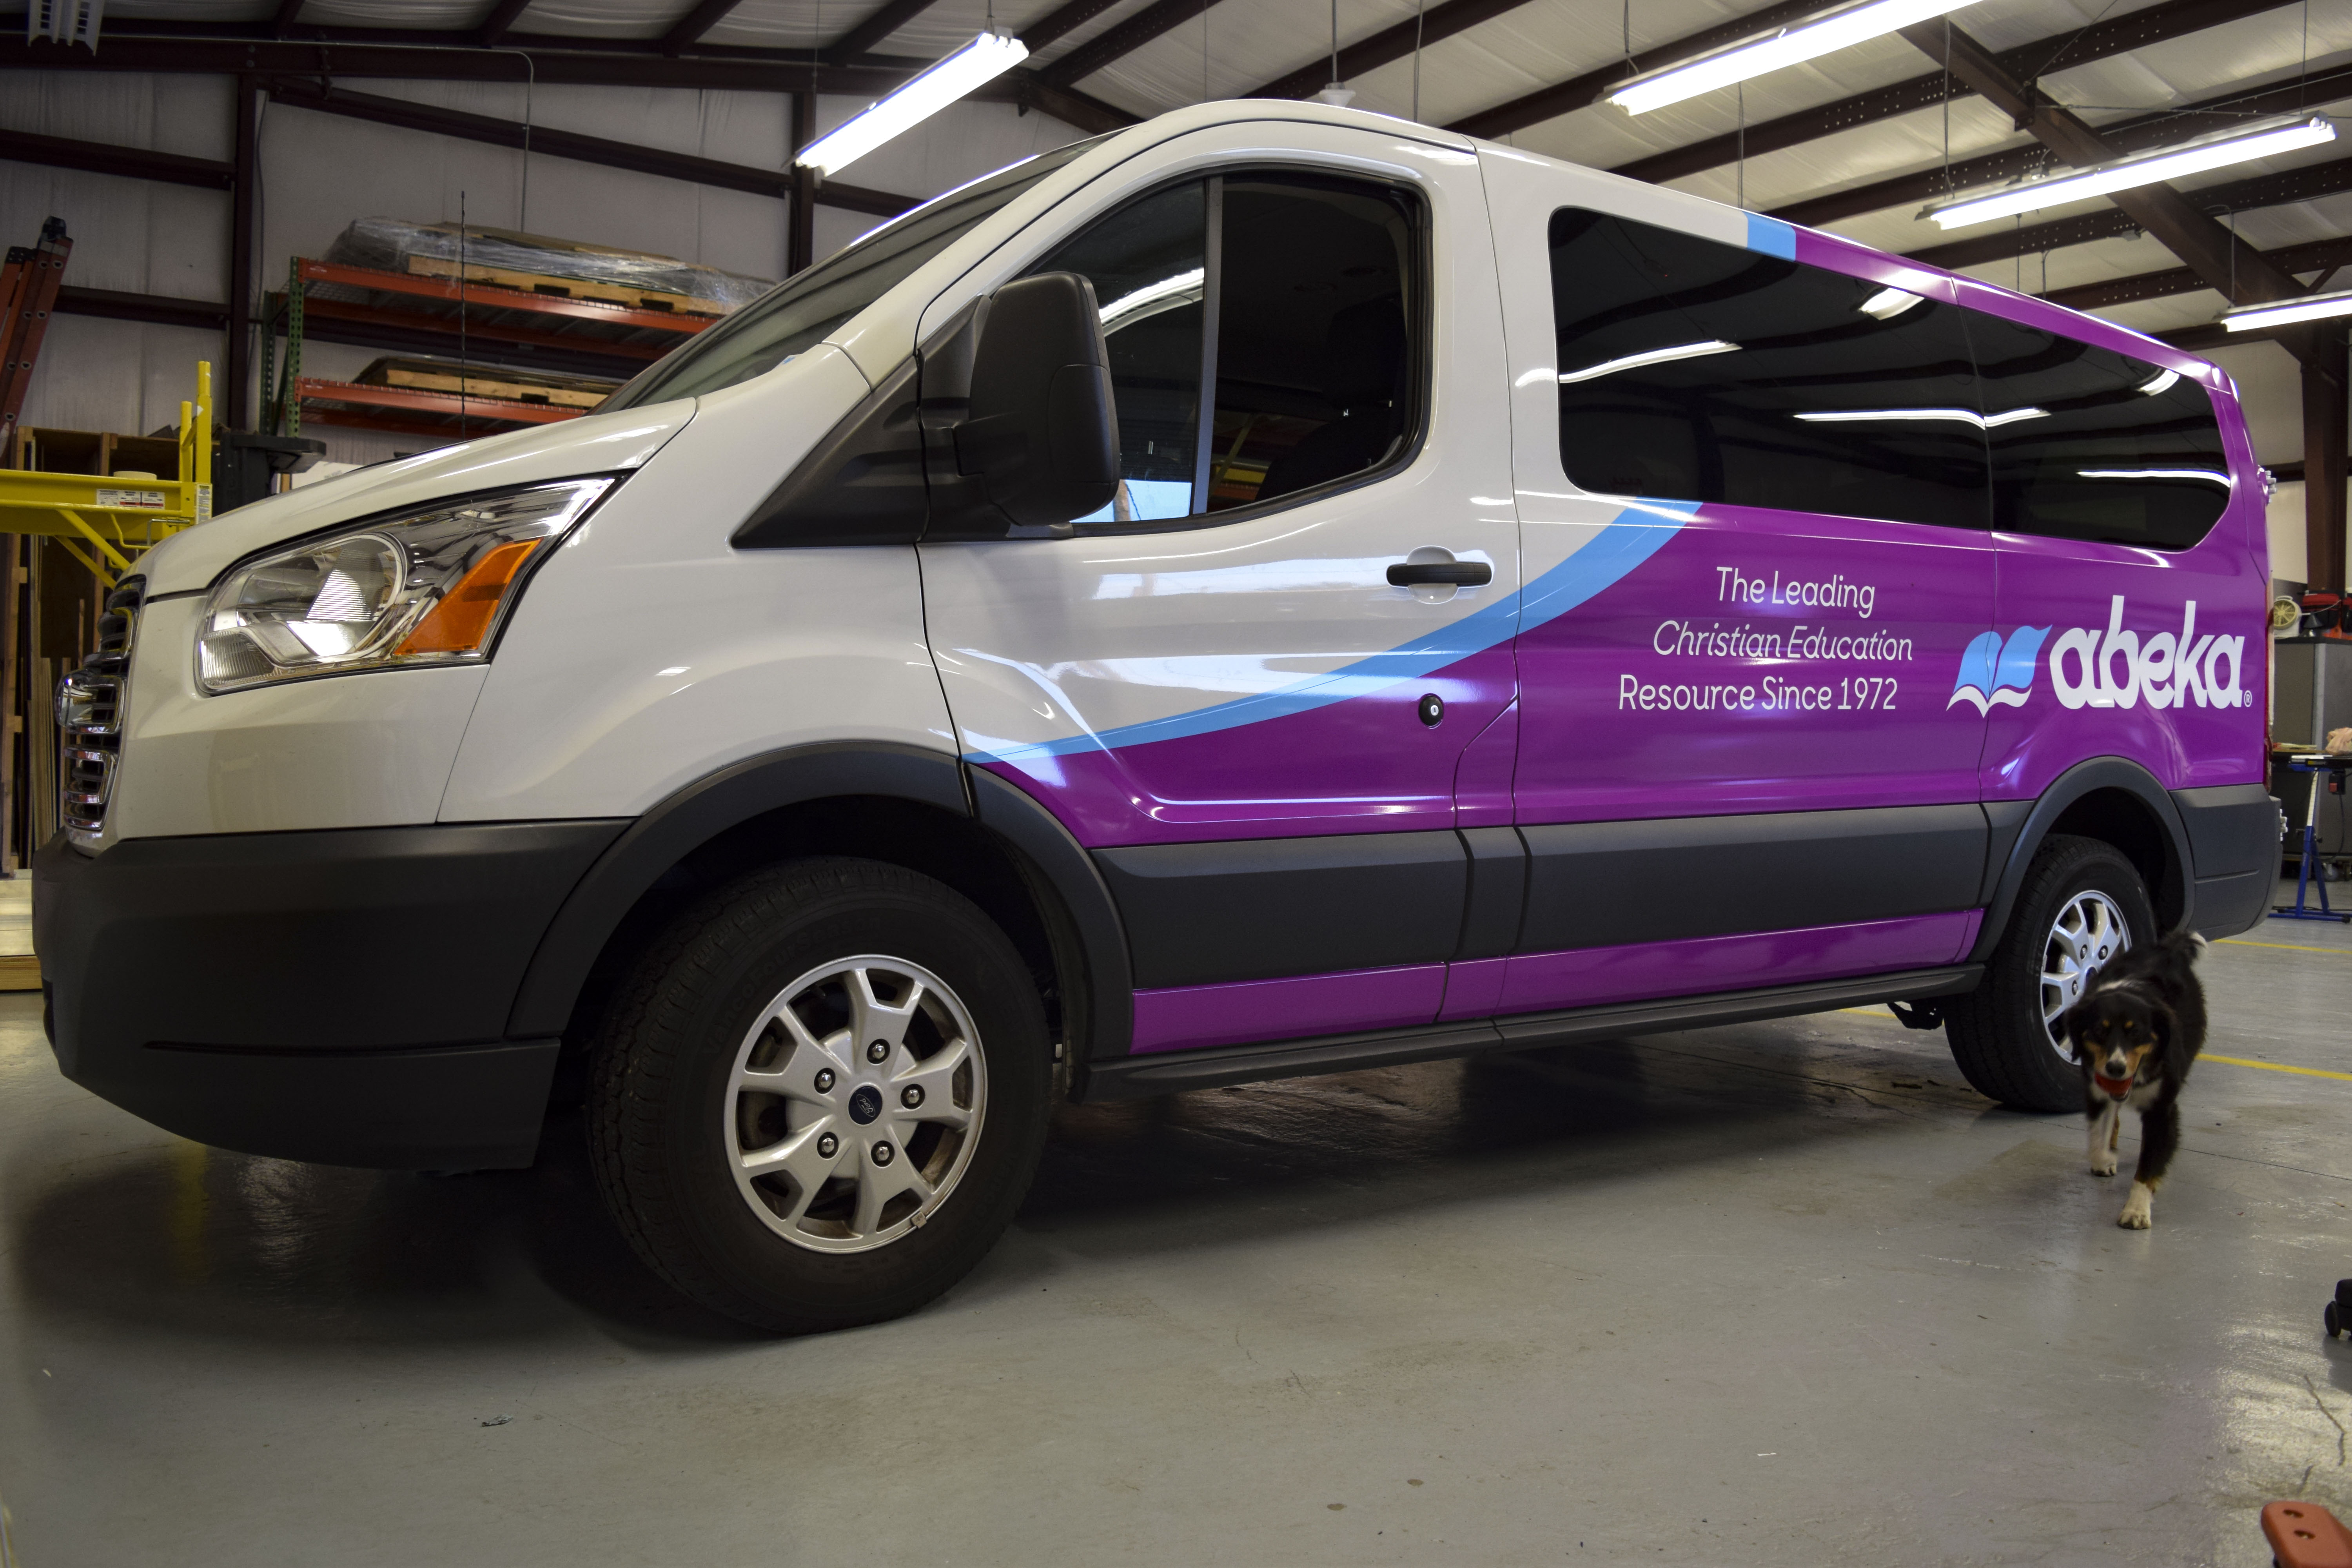 Vinyl wraps on new abeka books vans - signgeek fleet wraps & graphics